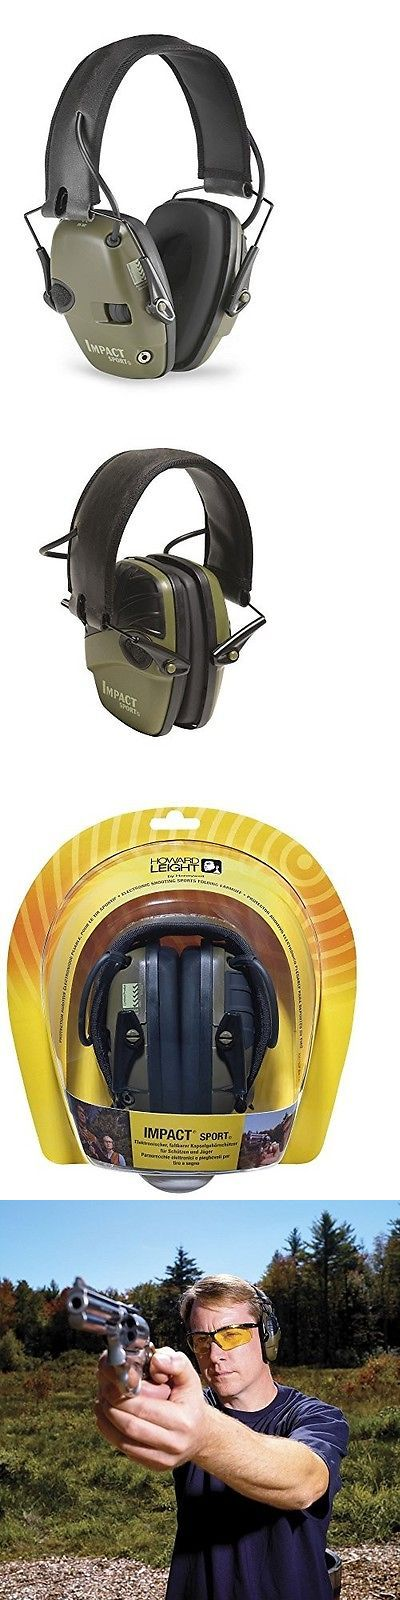 Hearing Protection 73942: Electronic Ear Muff Headphones Gun Shooting Protection Hunting Plugs Outdoor New -> BUY IT NOW ONLY: $64.99 on eBay!